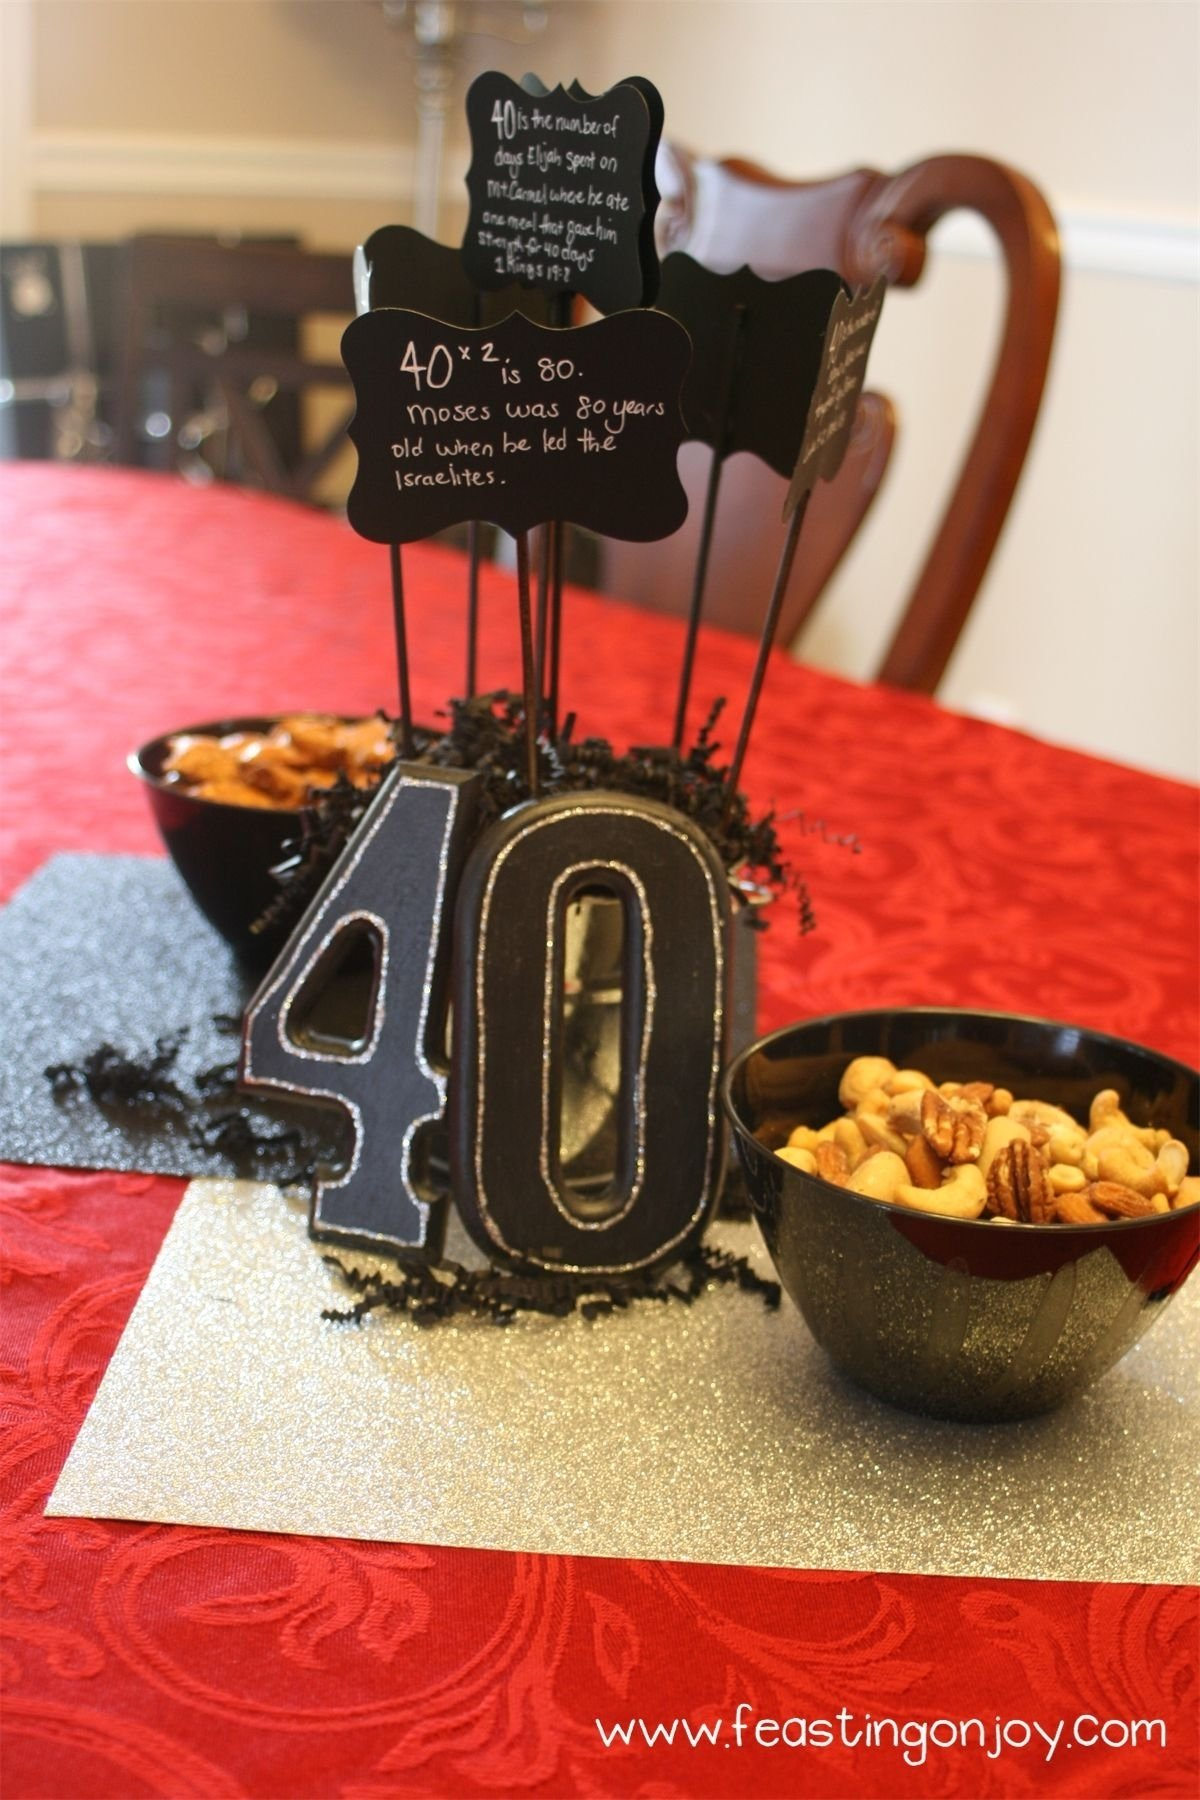 10 Stunning Male 40Th Birthday Party Ideas a christian manly 40th birthday party free download 40th 1 2020